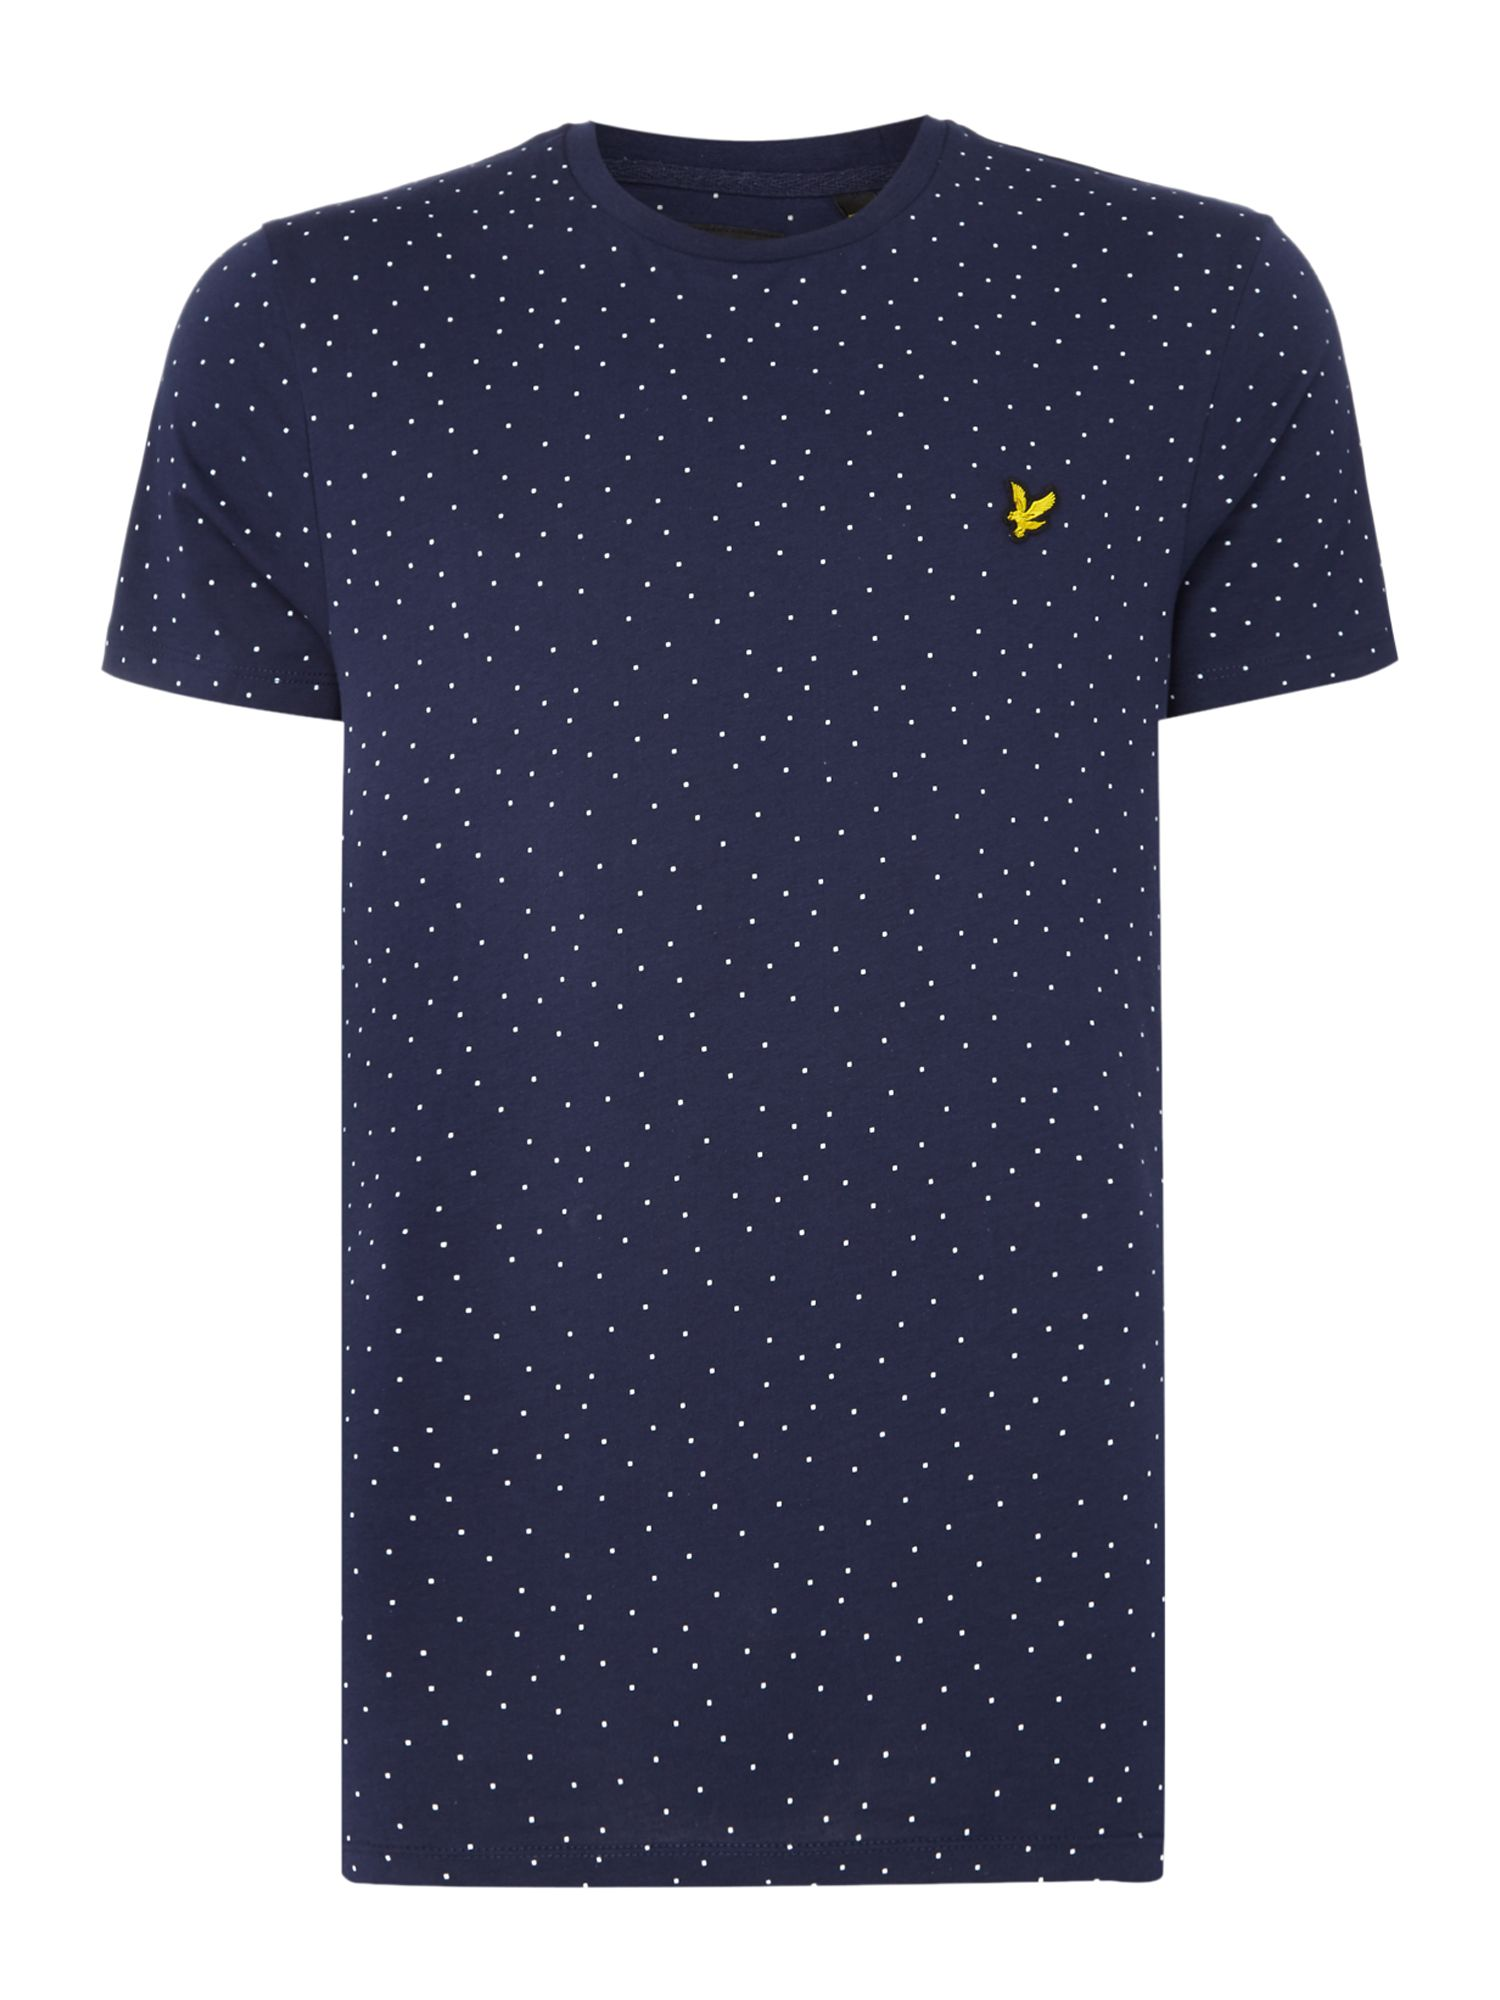 Men's Lyle and Scott Minimal dot crew neck short sleeve t-shirt, Blue